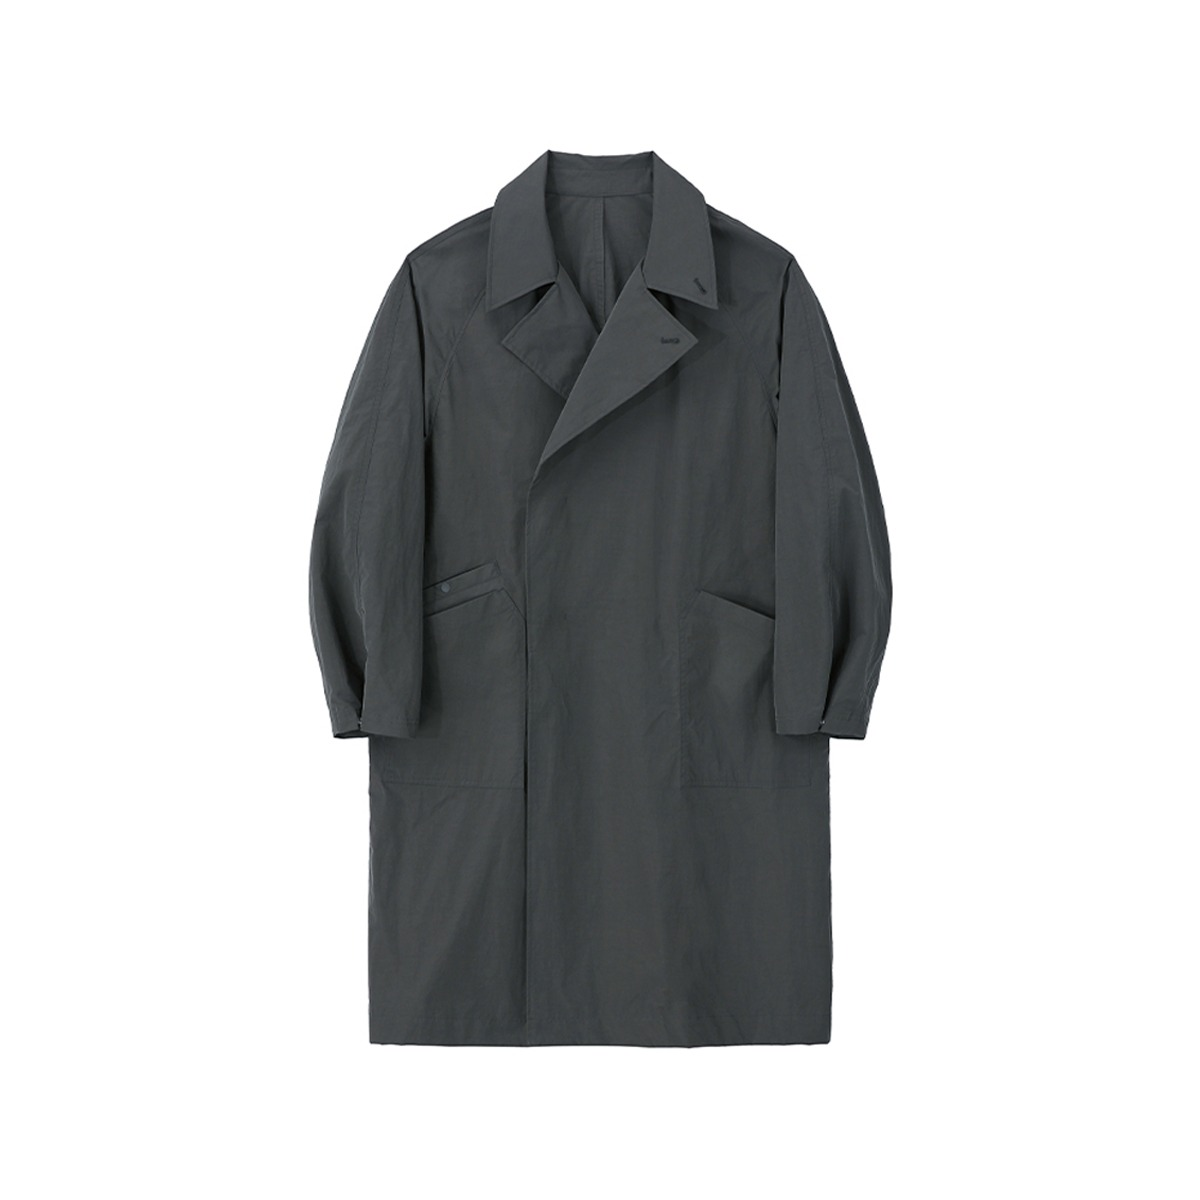 [ART IF ACTS] DOUBLE BREASTED PAPER COAT 'CHARCOAL'